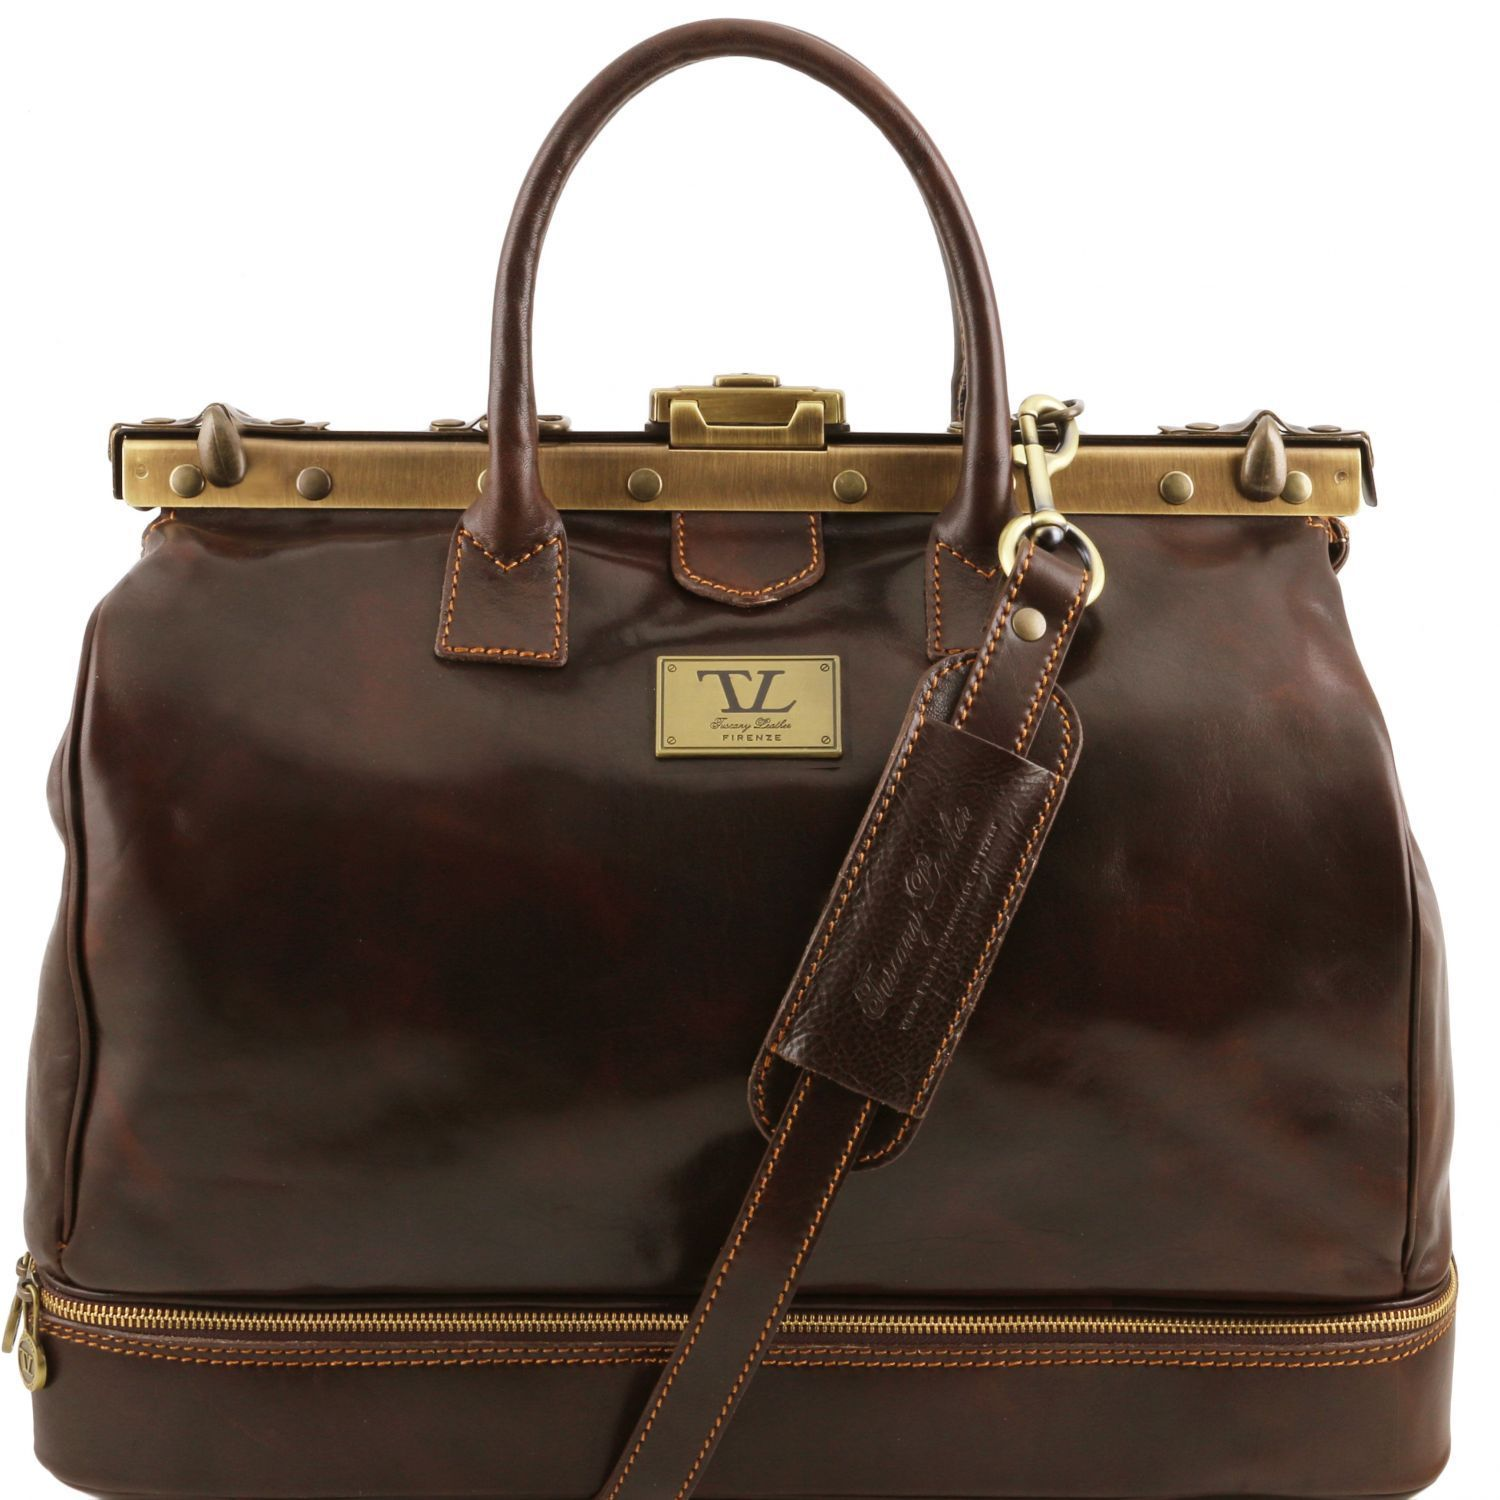 Tuscany Leather Barcelona Double Bottom Gladstone Leather Bag 46.5Cm Gladstone Bag Tuscany Leather Dark Brown